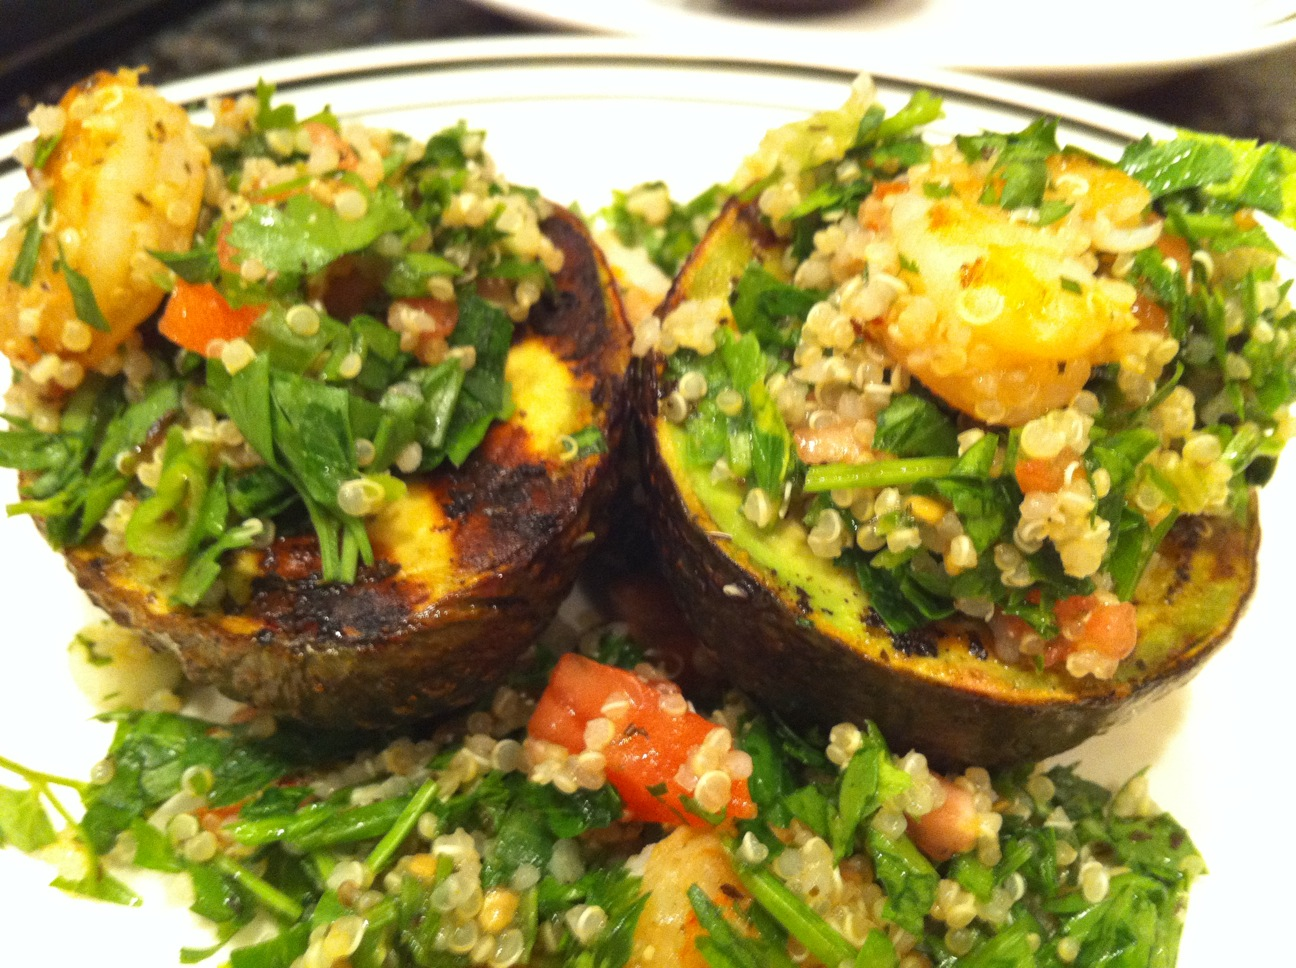 The Foodgitive: Quinoa Tabouli Salad in Grilled Avocado